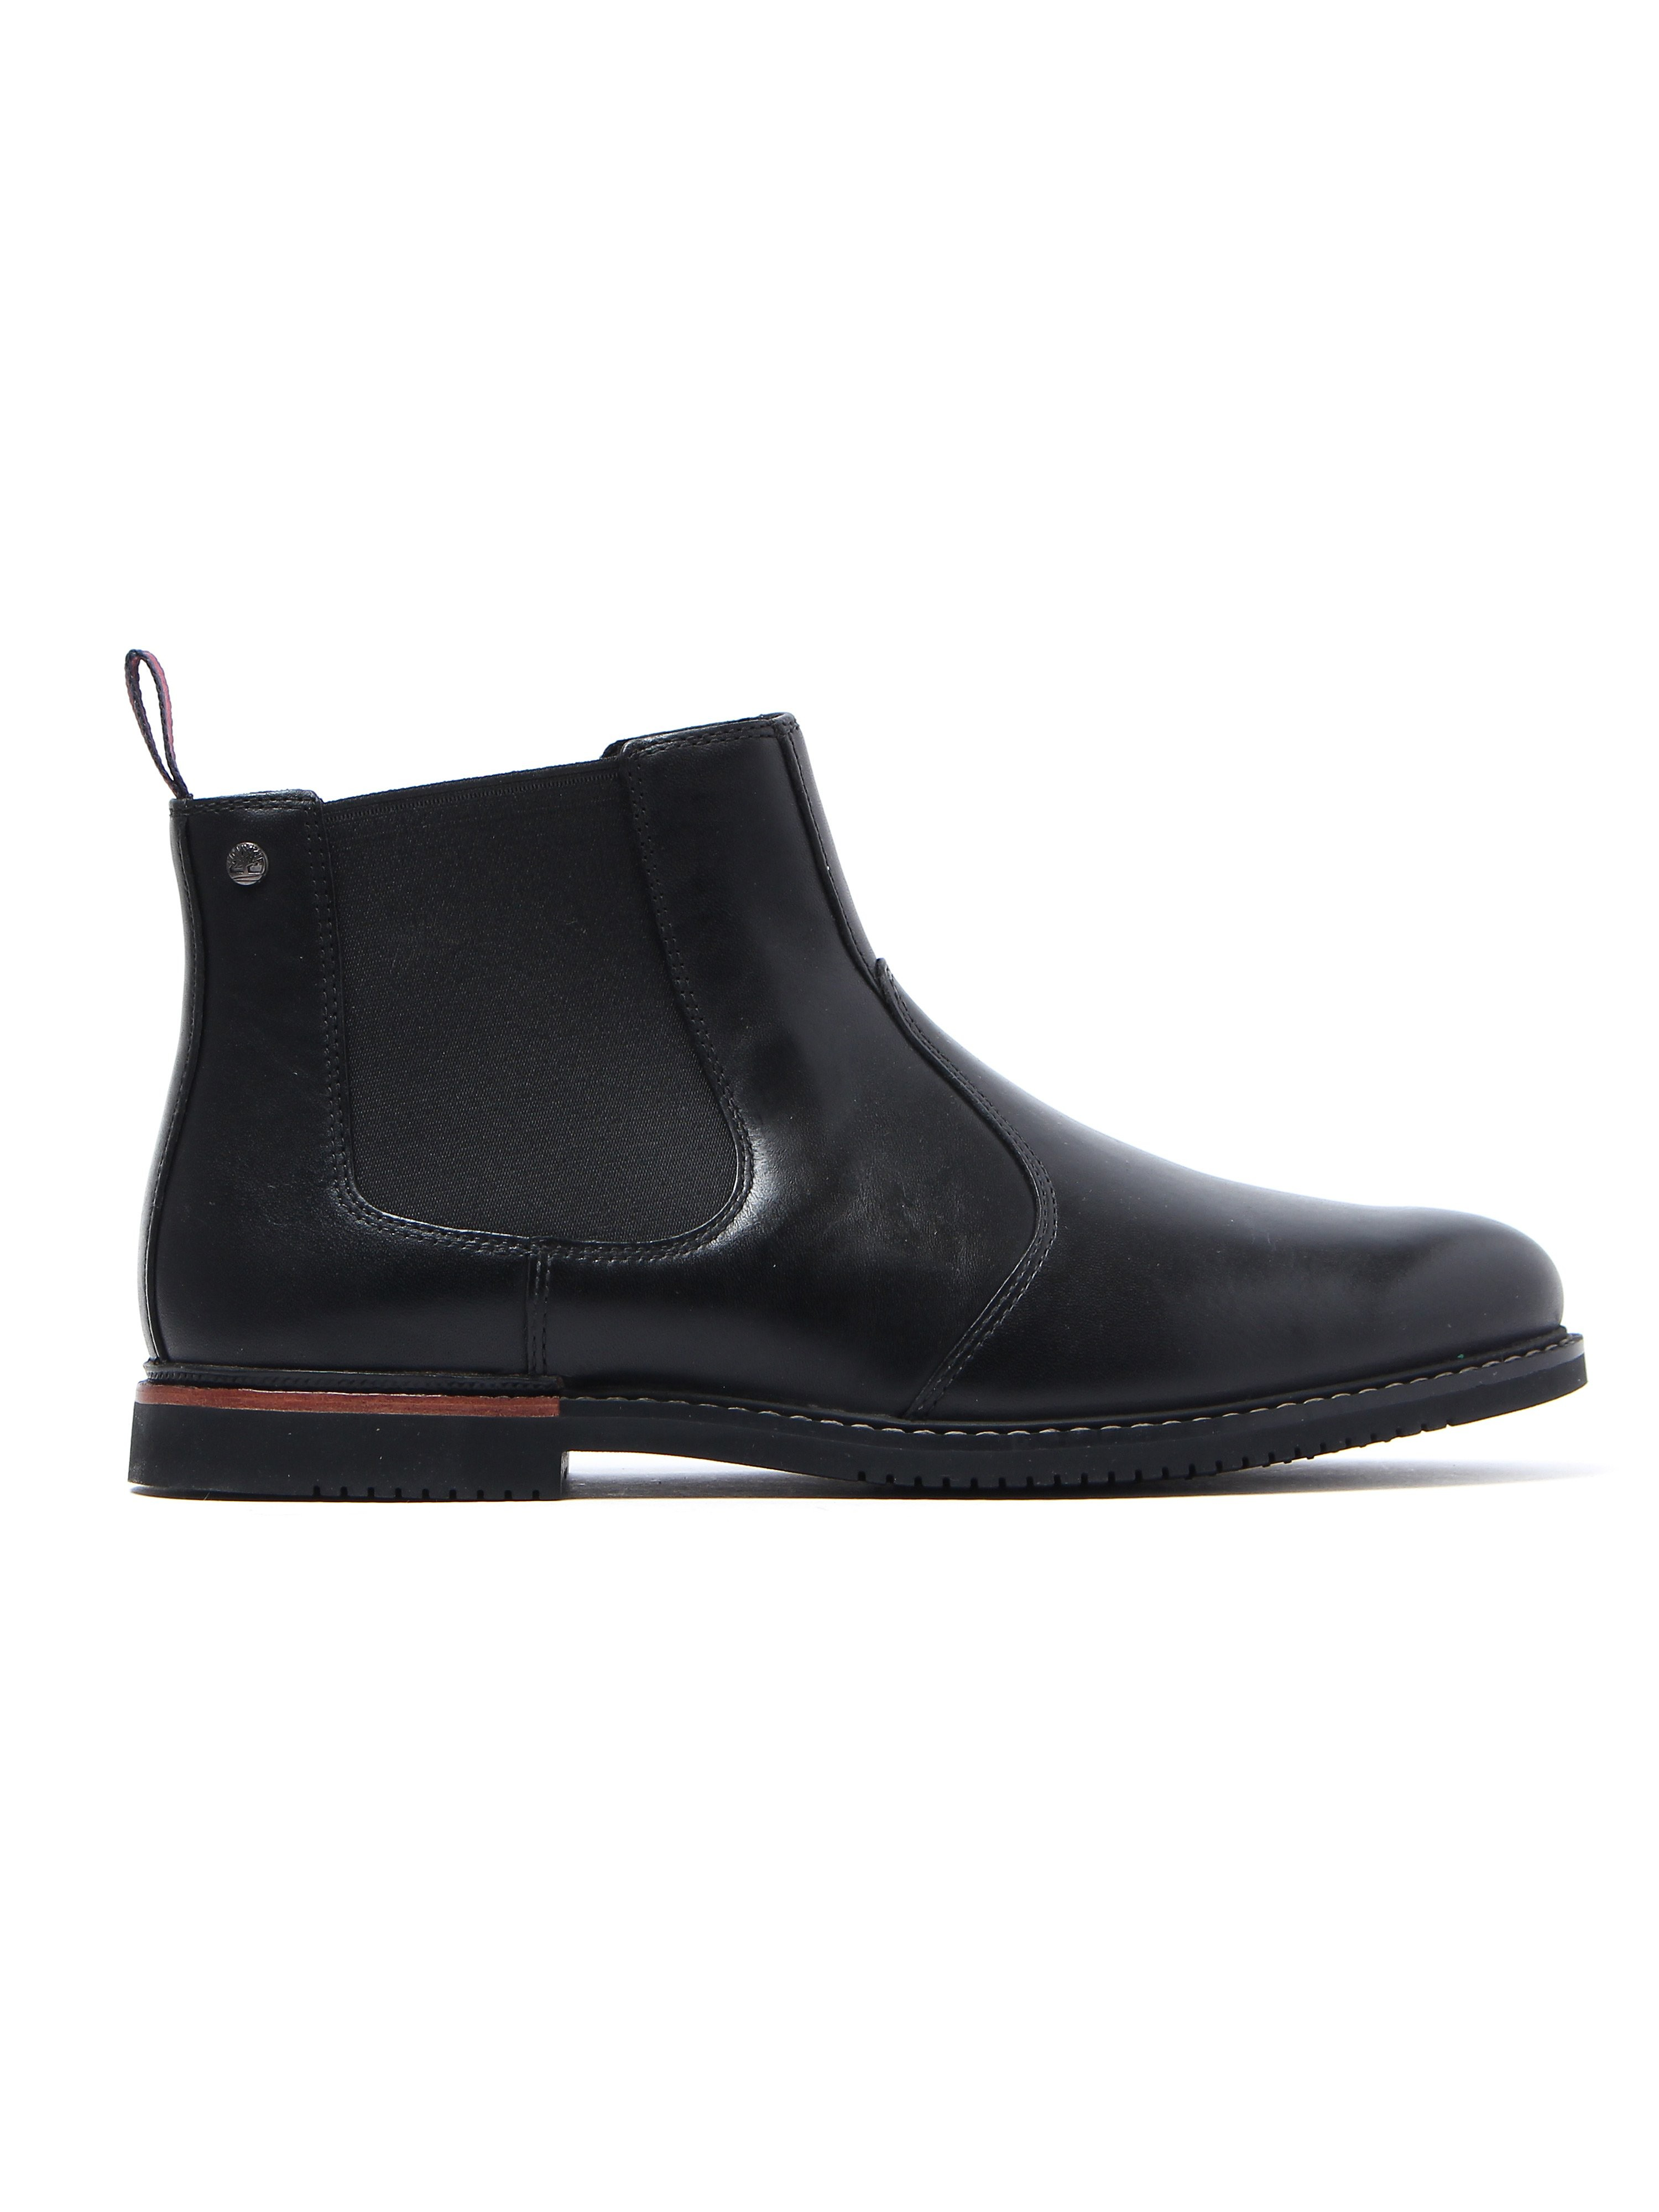 Timberland Men's Ekbrook Park Chelsea Boots - Black Leather